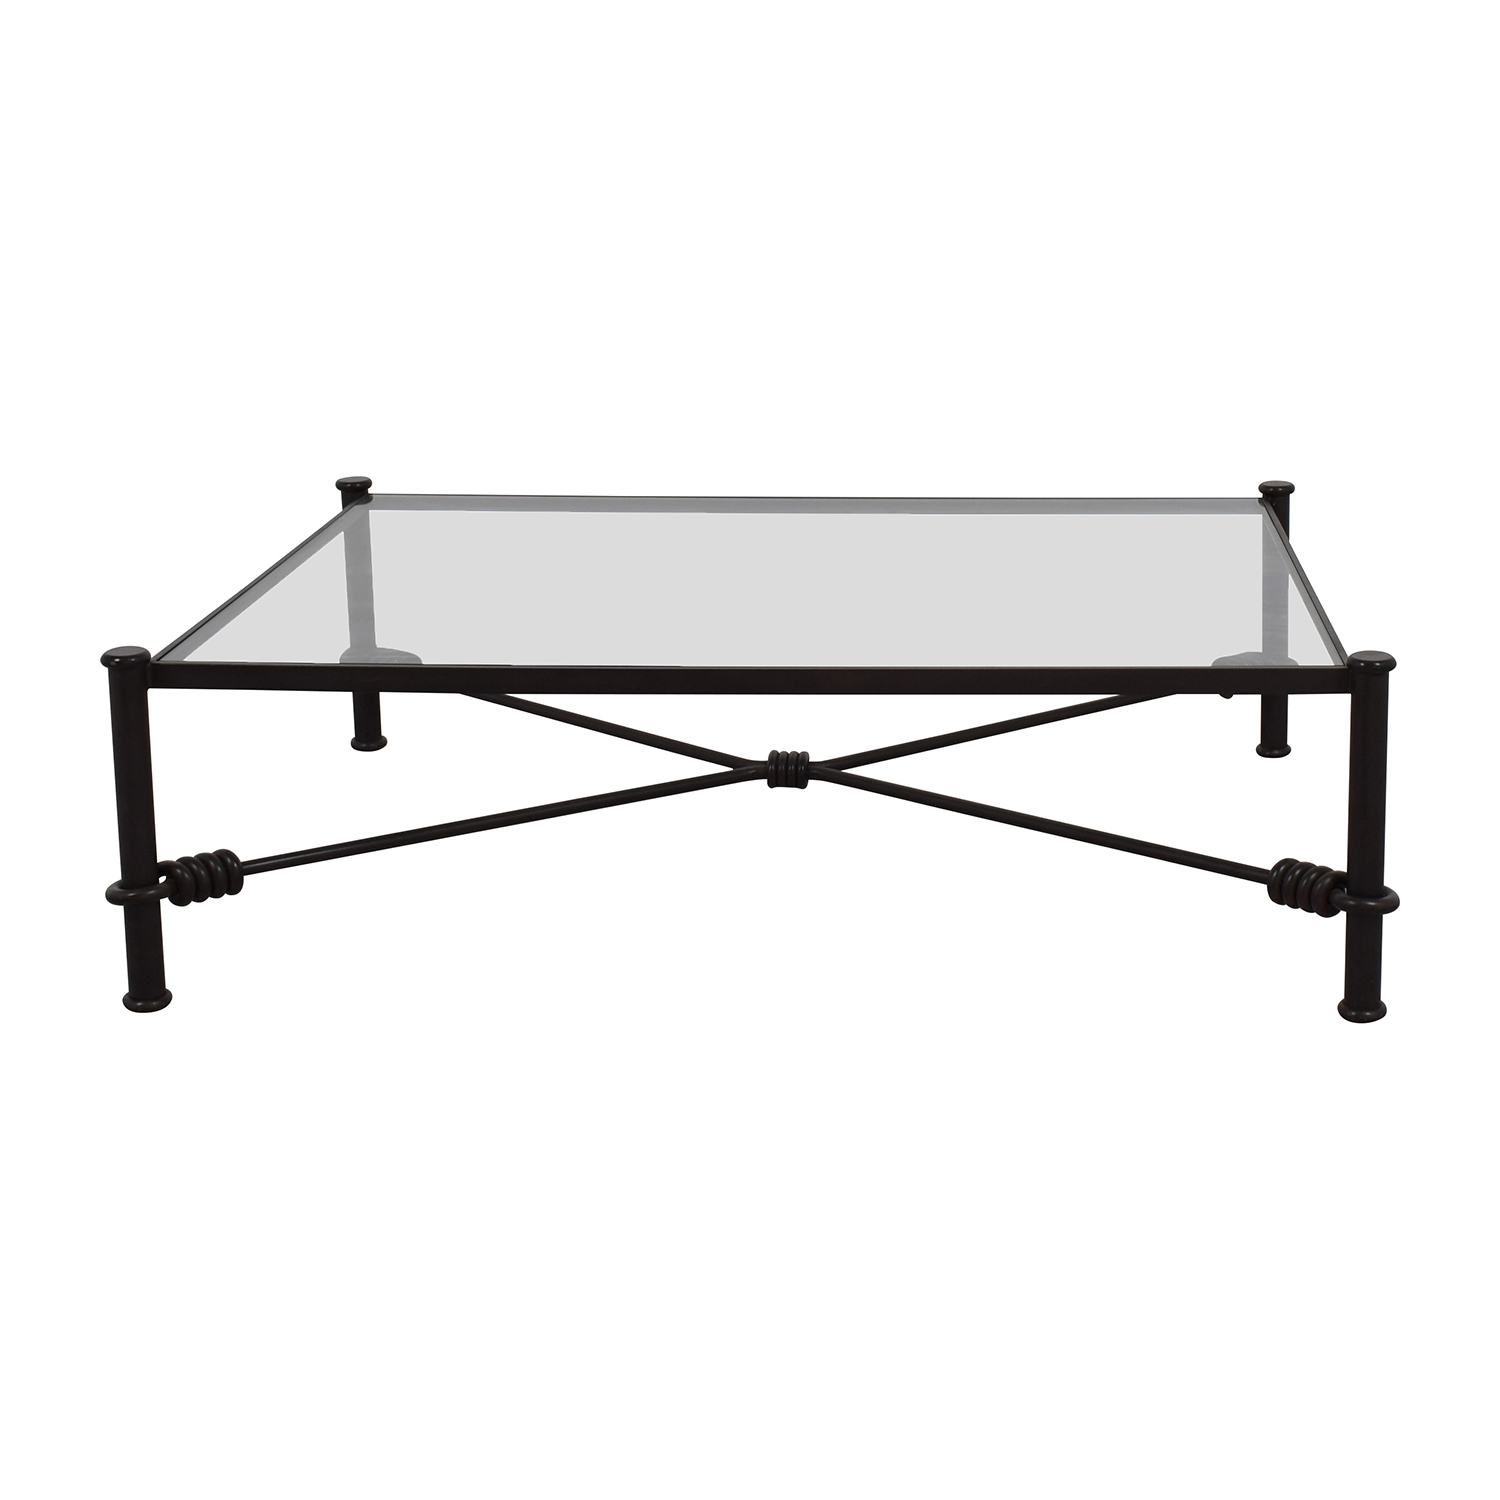 88 Off Black Wrought Iron Glass Coffee Table Tables pertaining to measurements 1500 X 1500